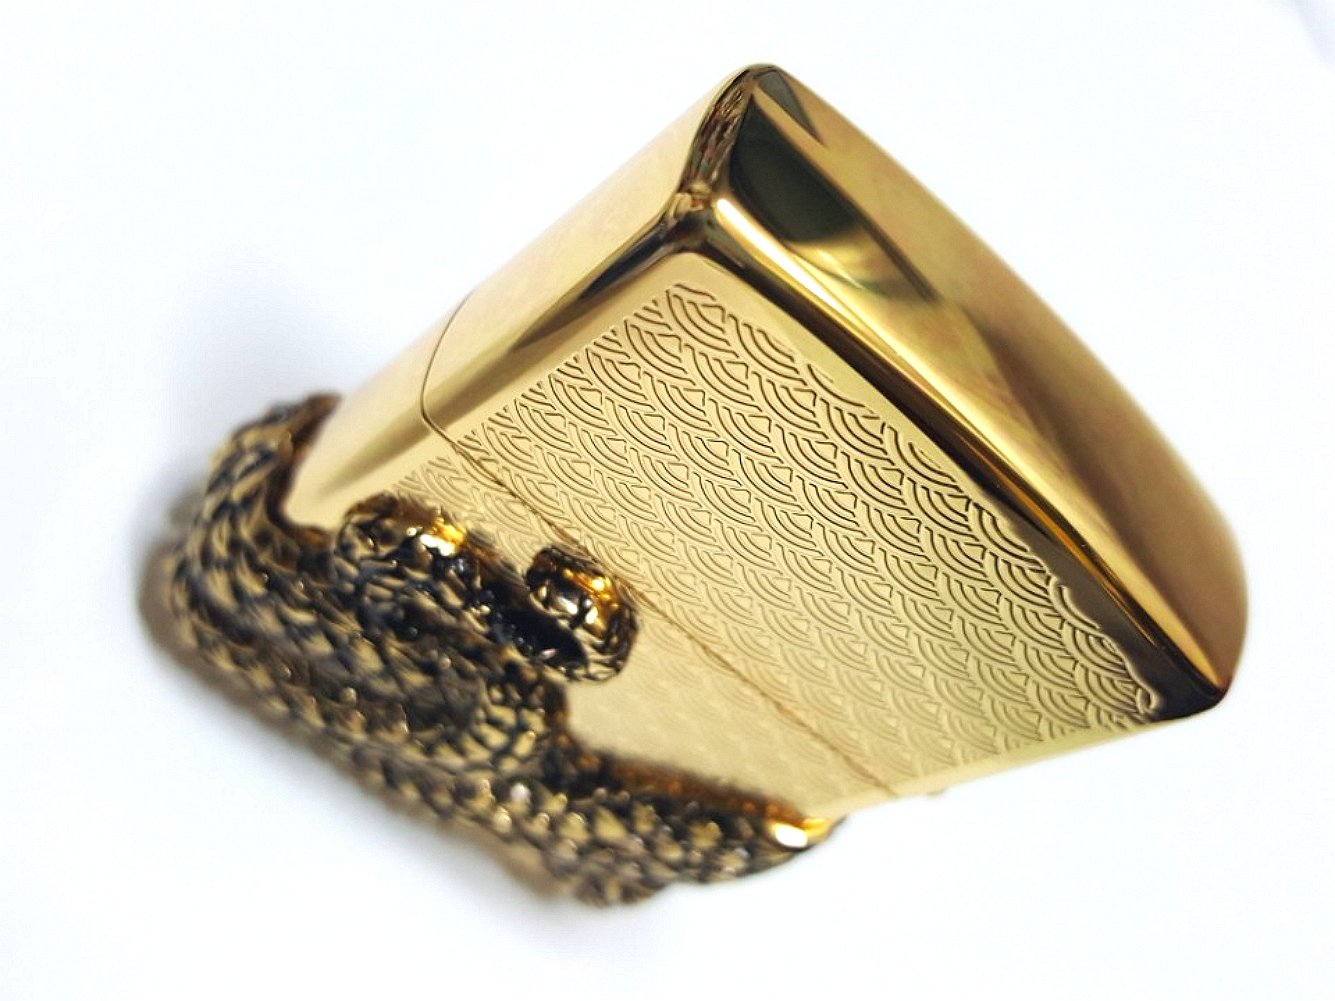 Zippo Snake Coil Gold Lighter / Genuine Authentic / Original Packing (6 Flints set Free Gift) by Zippo (Image #7)